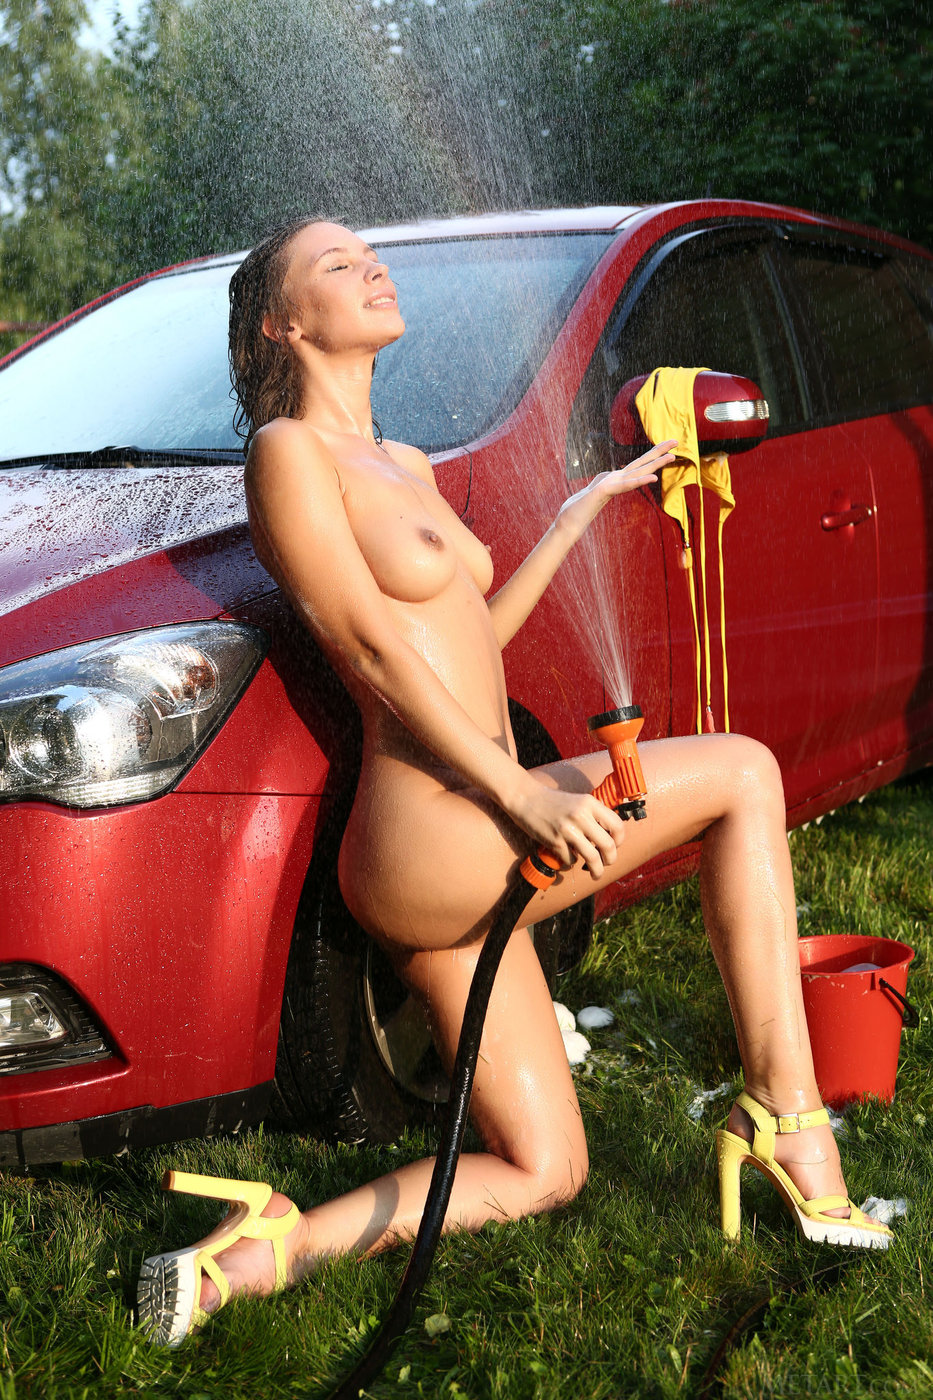 Wavy-haired brunette in bikini and her messy, wet, naked car wash